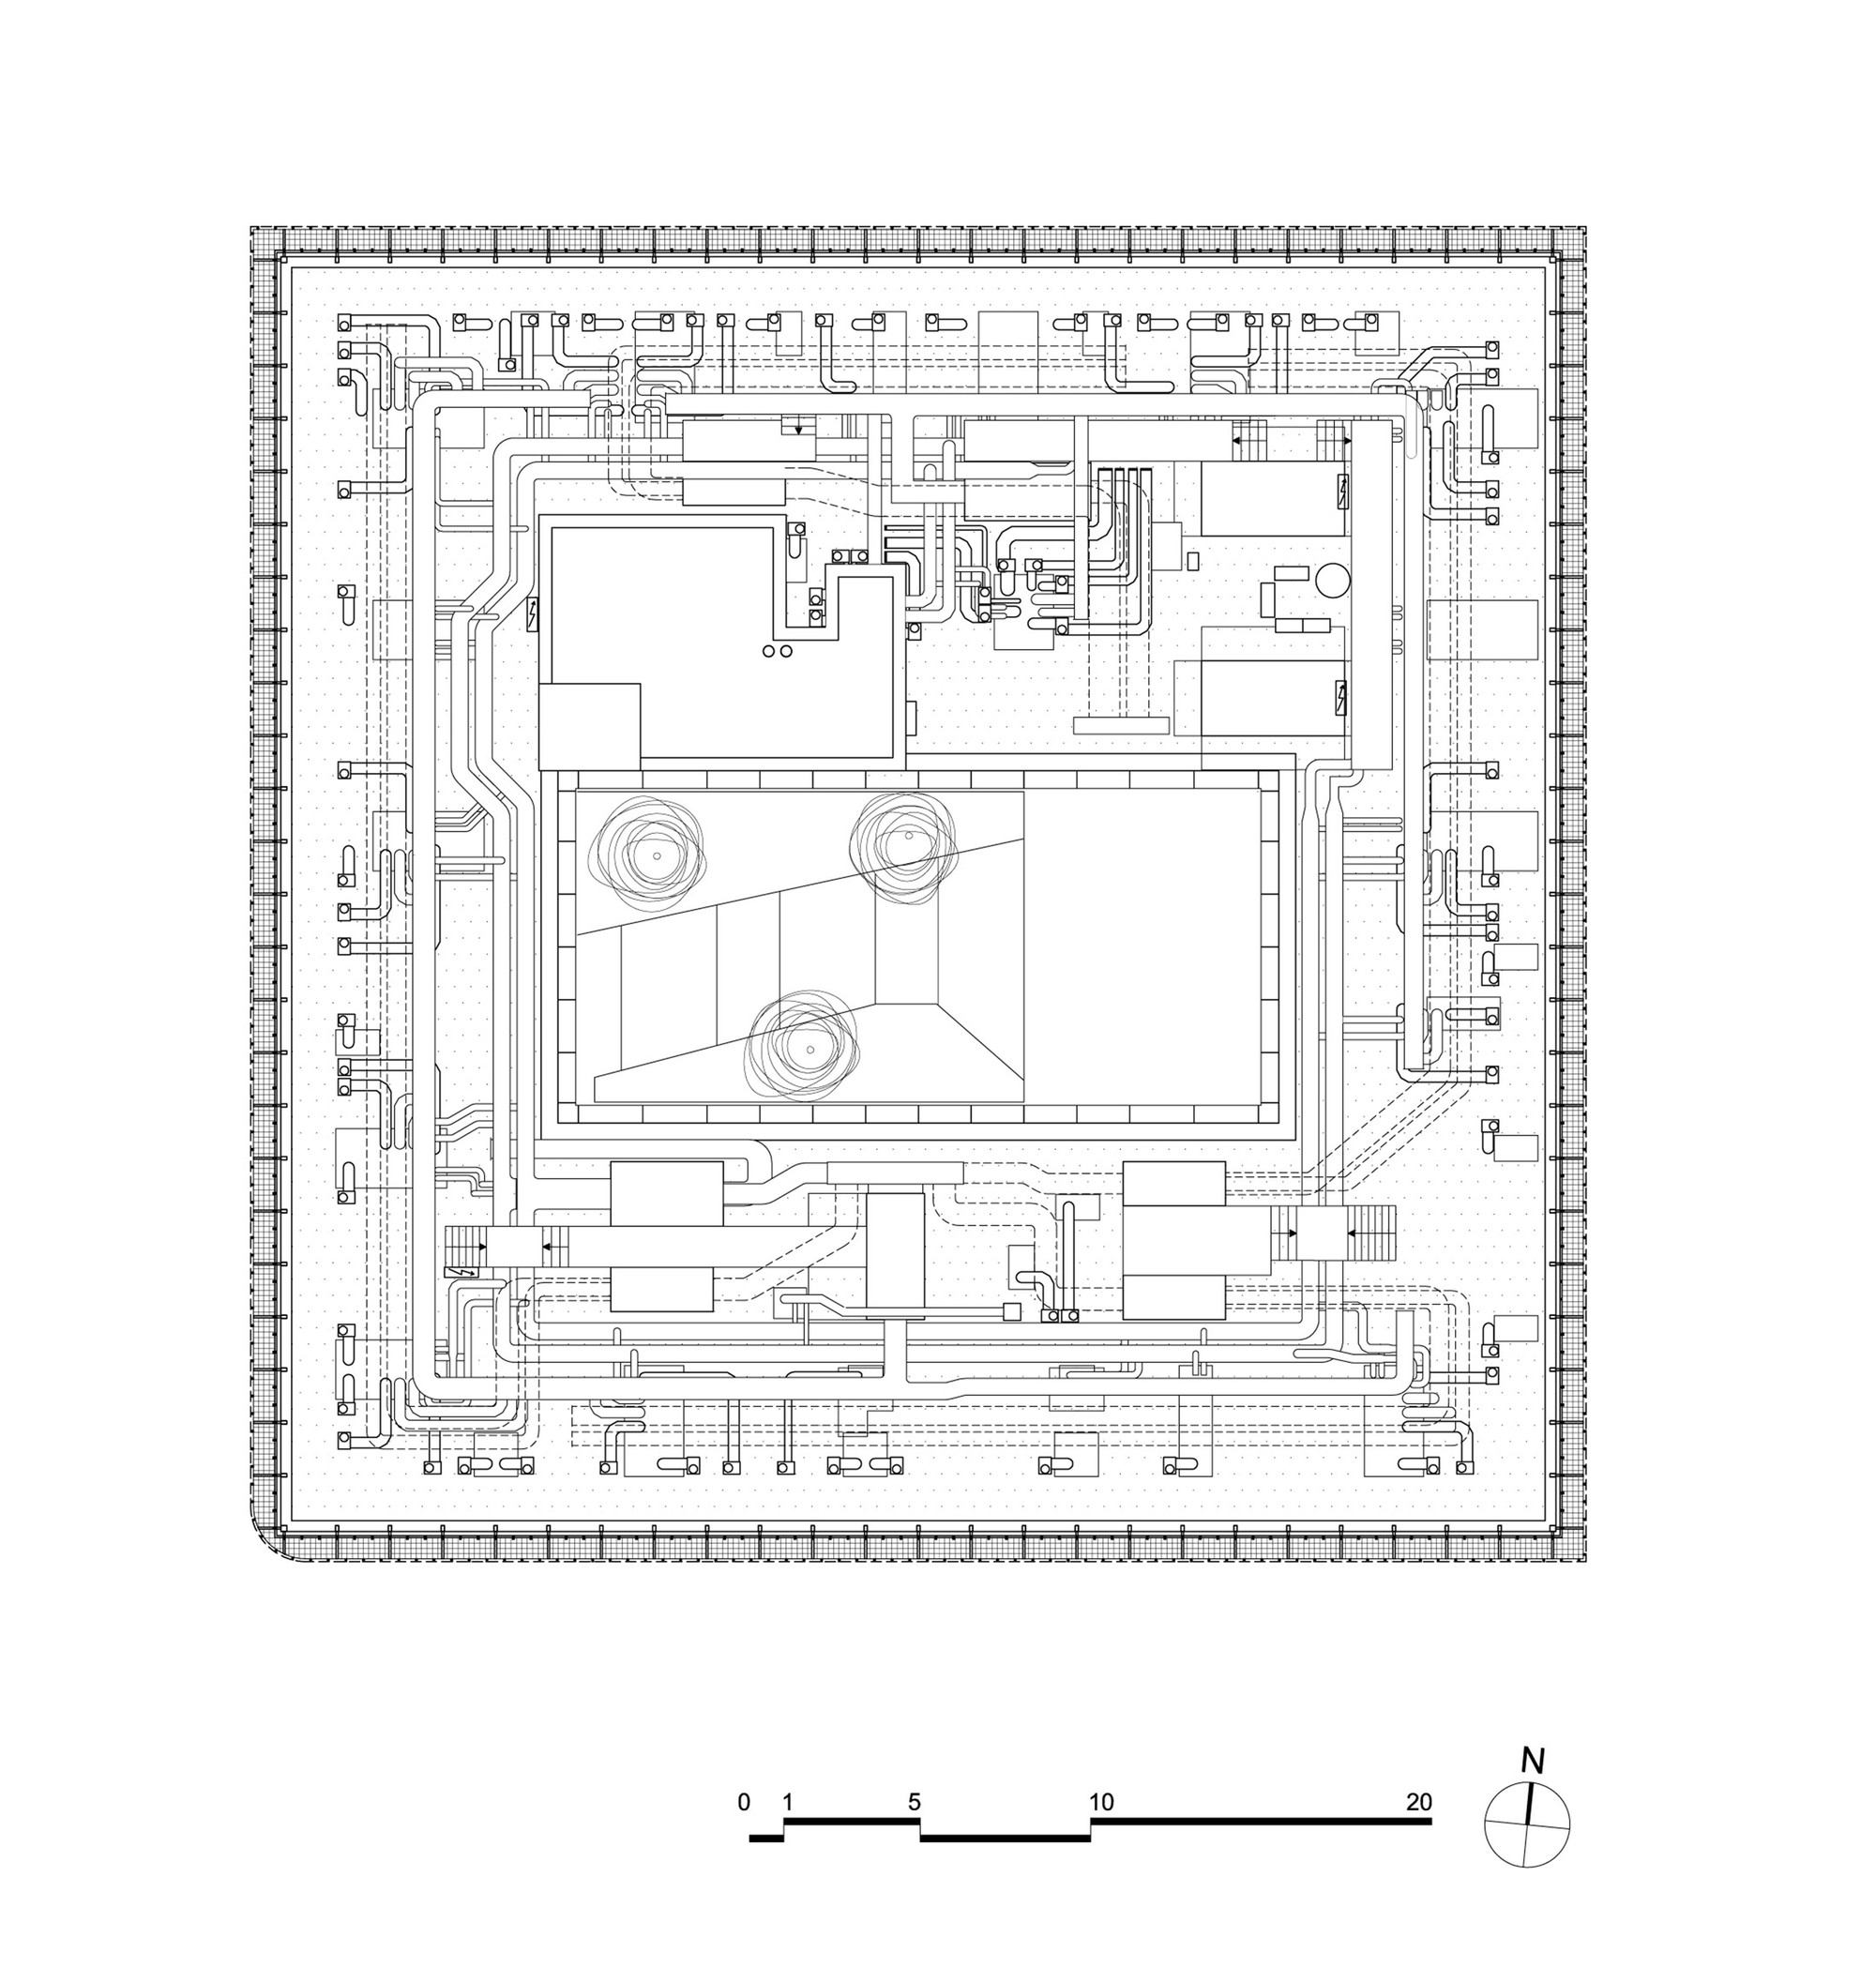 Floor Planning Tools In Asic: Gallery Of BIOPOLE Biotech Business Incubator